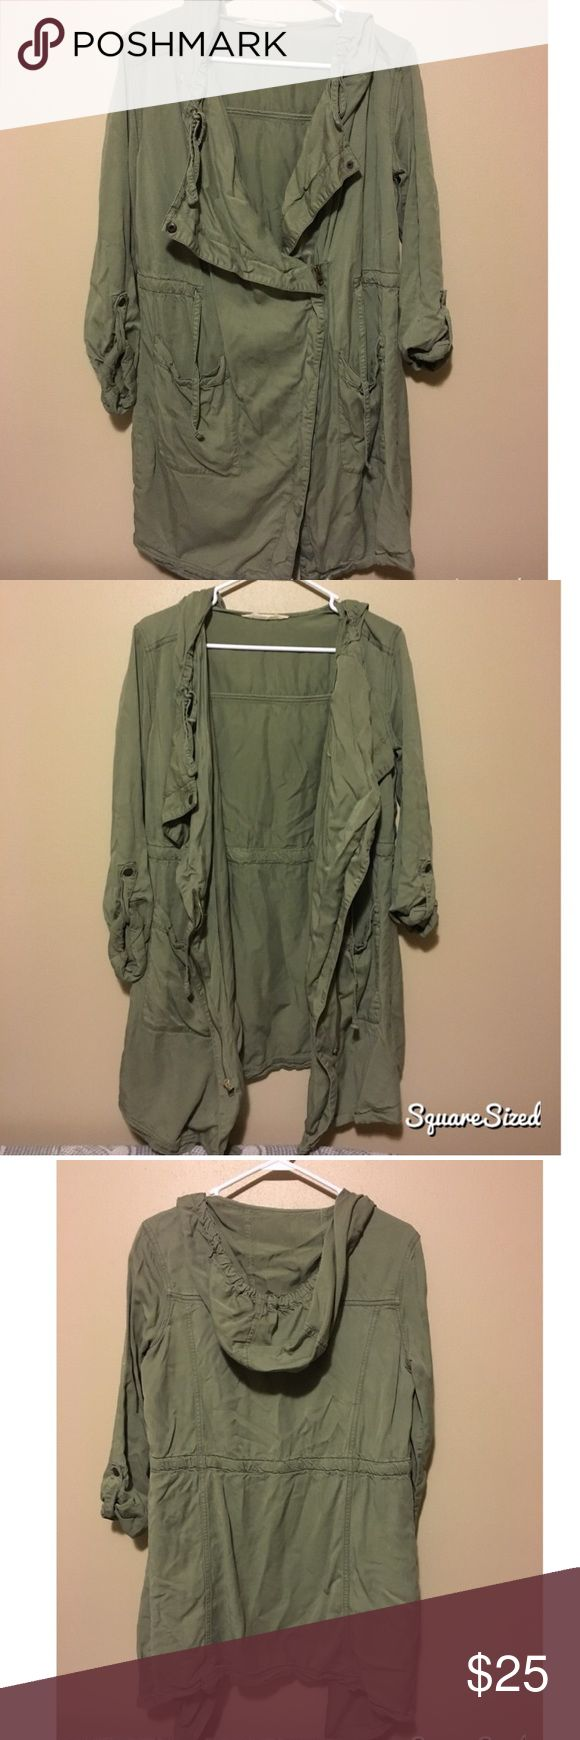 Thin parka jacket from Hollister Thin hooded parka from hollister in military green. Has pockets and zipper. Great for everyday outfit. Hollister Jackets & Coats Utility Jackets